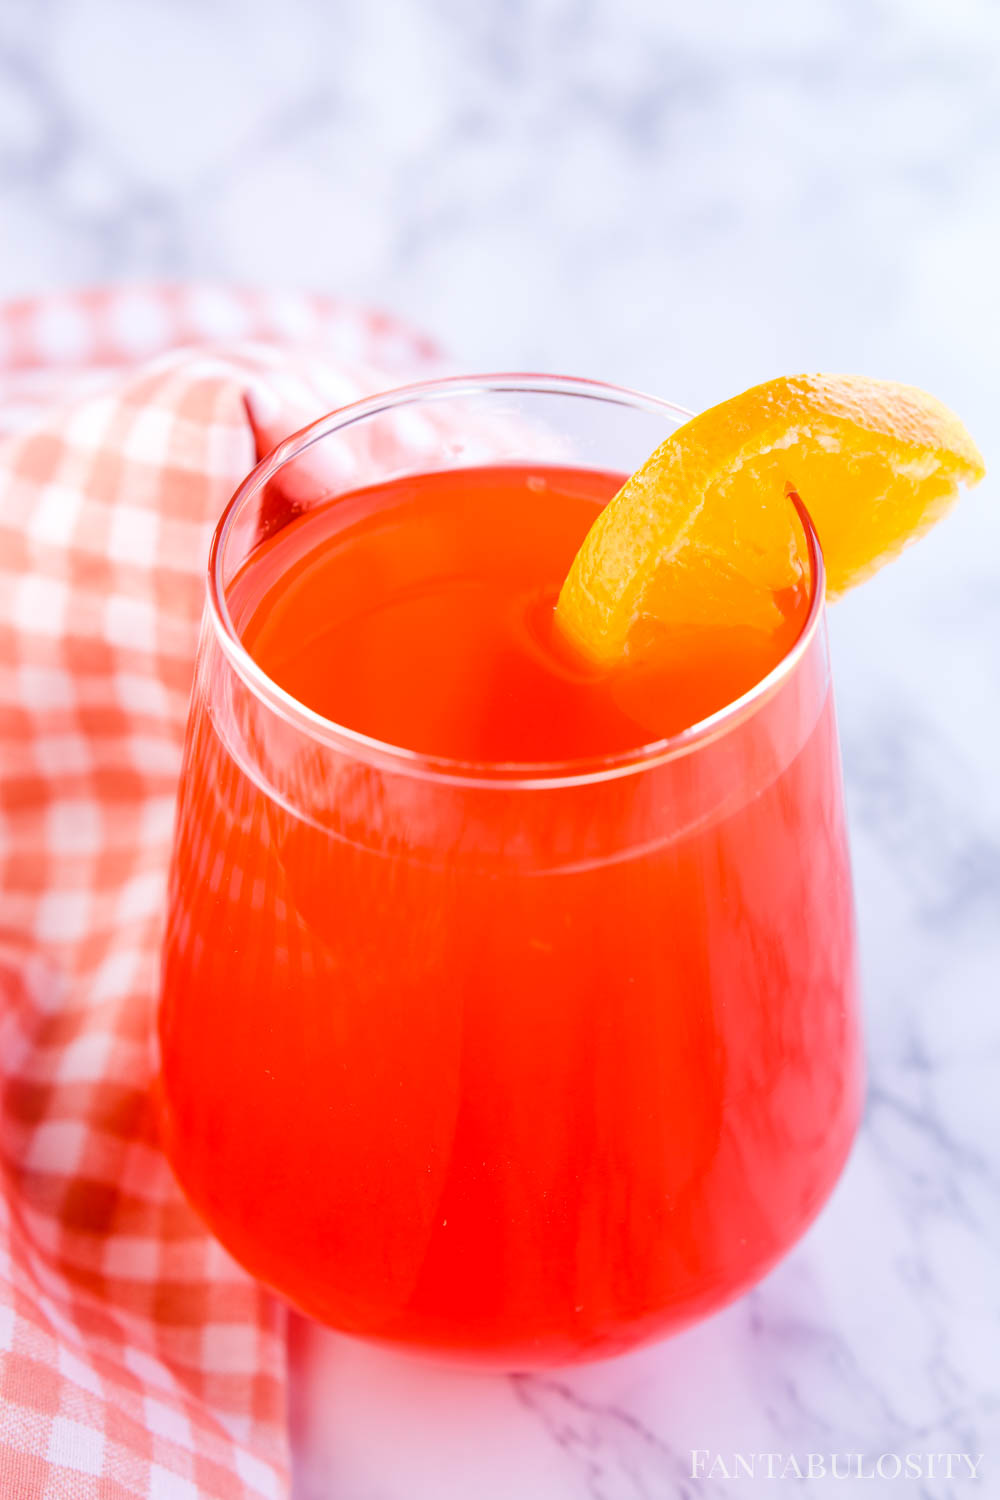 Red Fruit punch in glass with orange slice